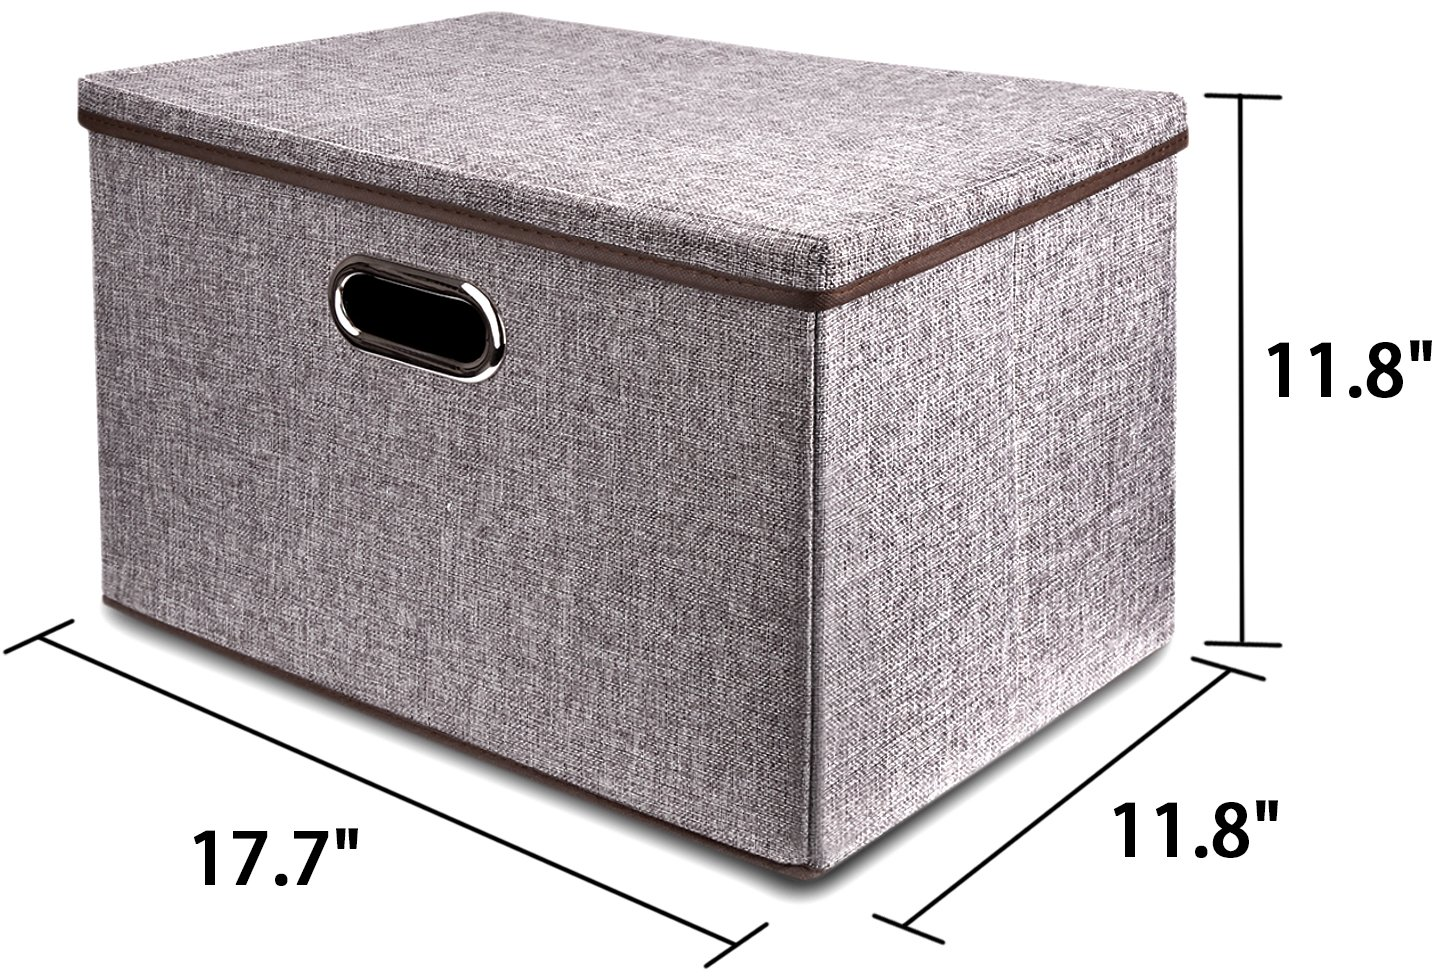 Large Linen Fabric Foldable Storage Container [2-Pack] with Removable Lid and Handles,Storage bin box cubes Organizer - Gray For Home, Office, Nursery, Closet, Bedroom, Living Room by Baseshop (Image #7)